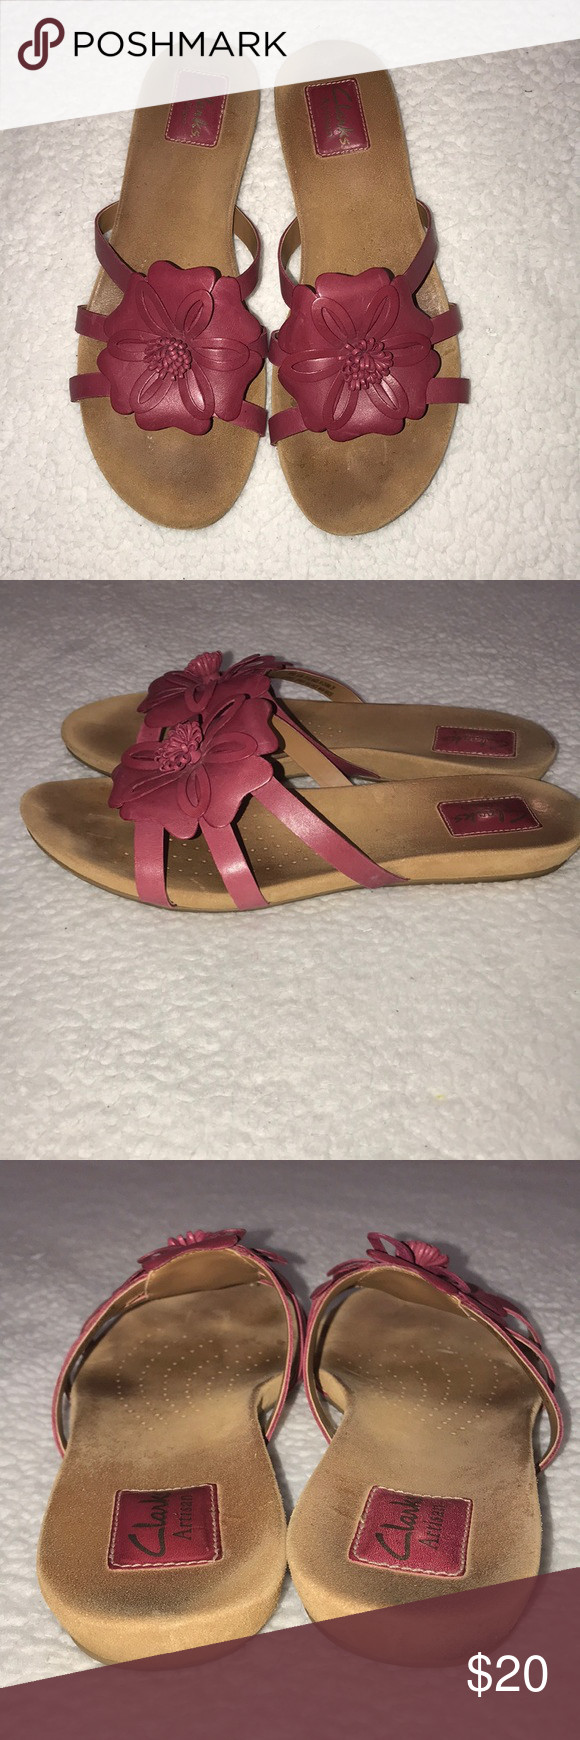 35ab53699940dd Clarks Artisan Pink Flower Sandals Size 8.5 Clarks Artisan Pink and Tan  Flower Floral Sandals Size 8.5 Grand 63 Cute comfortable sandals Clarks  Shoes ...